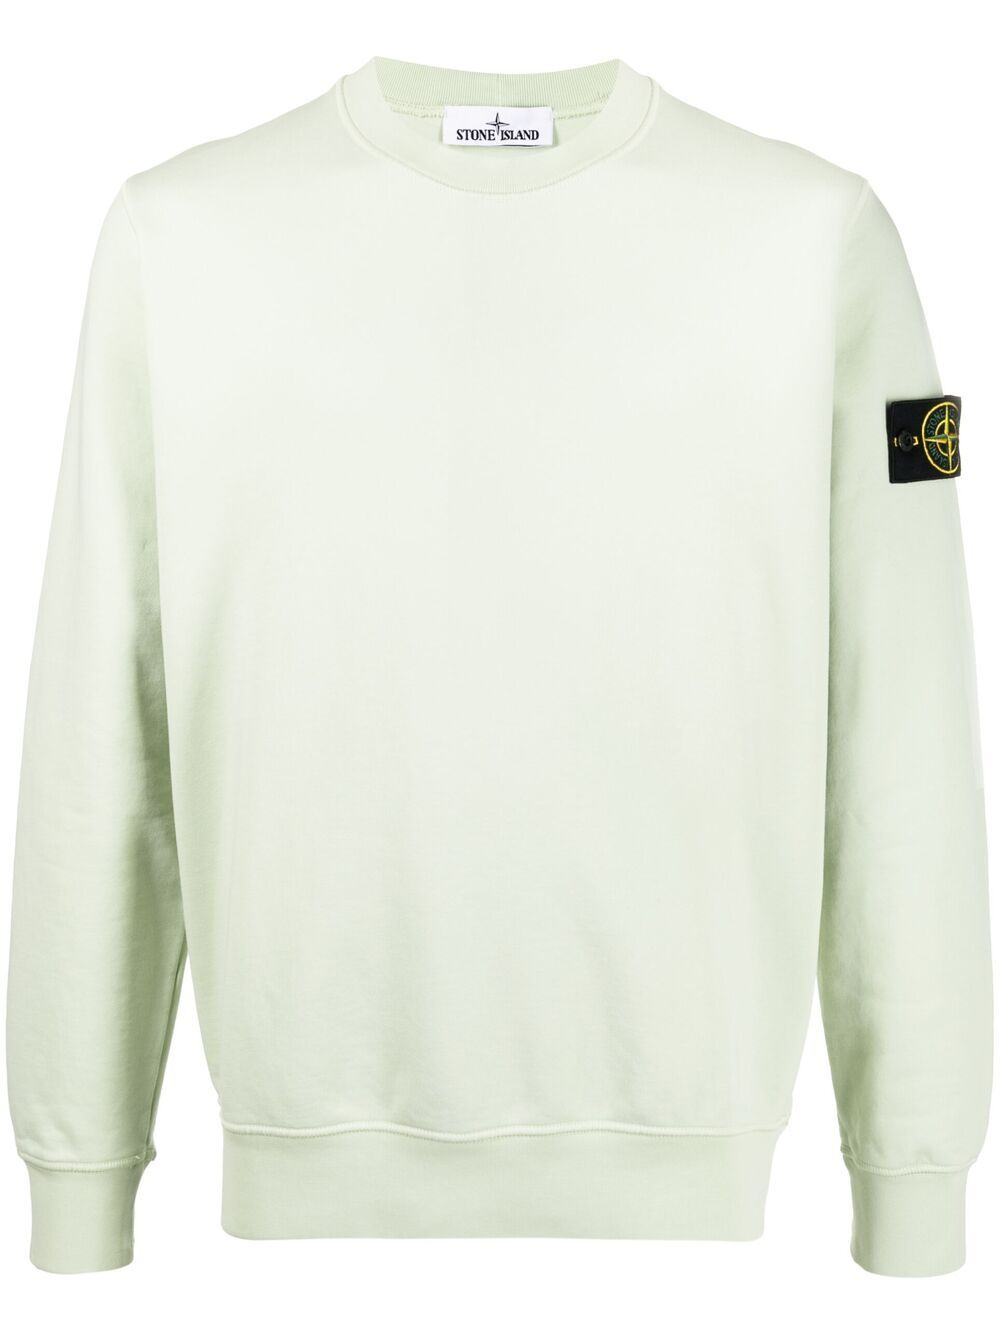 STONE ISLAND Logo Patch Sweatshirt Green